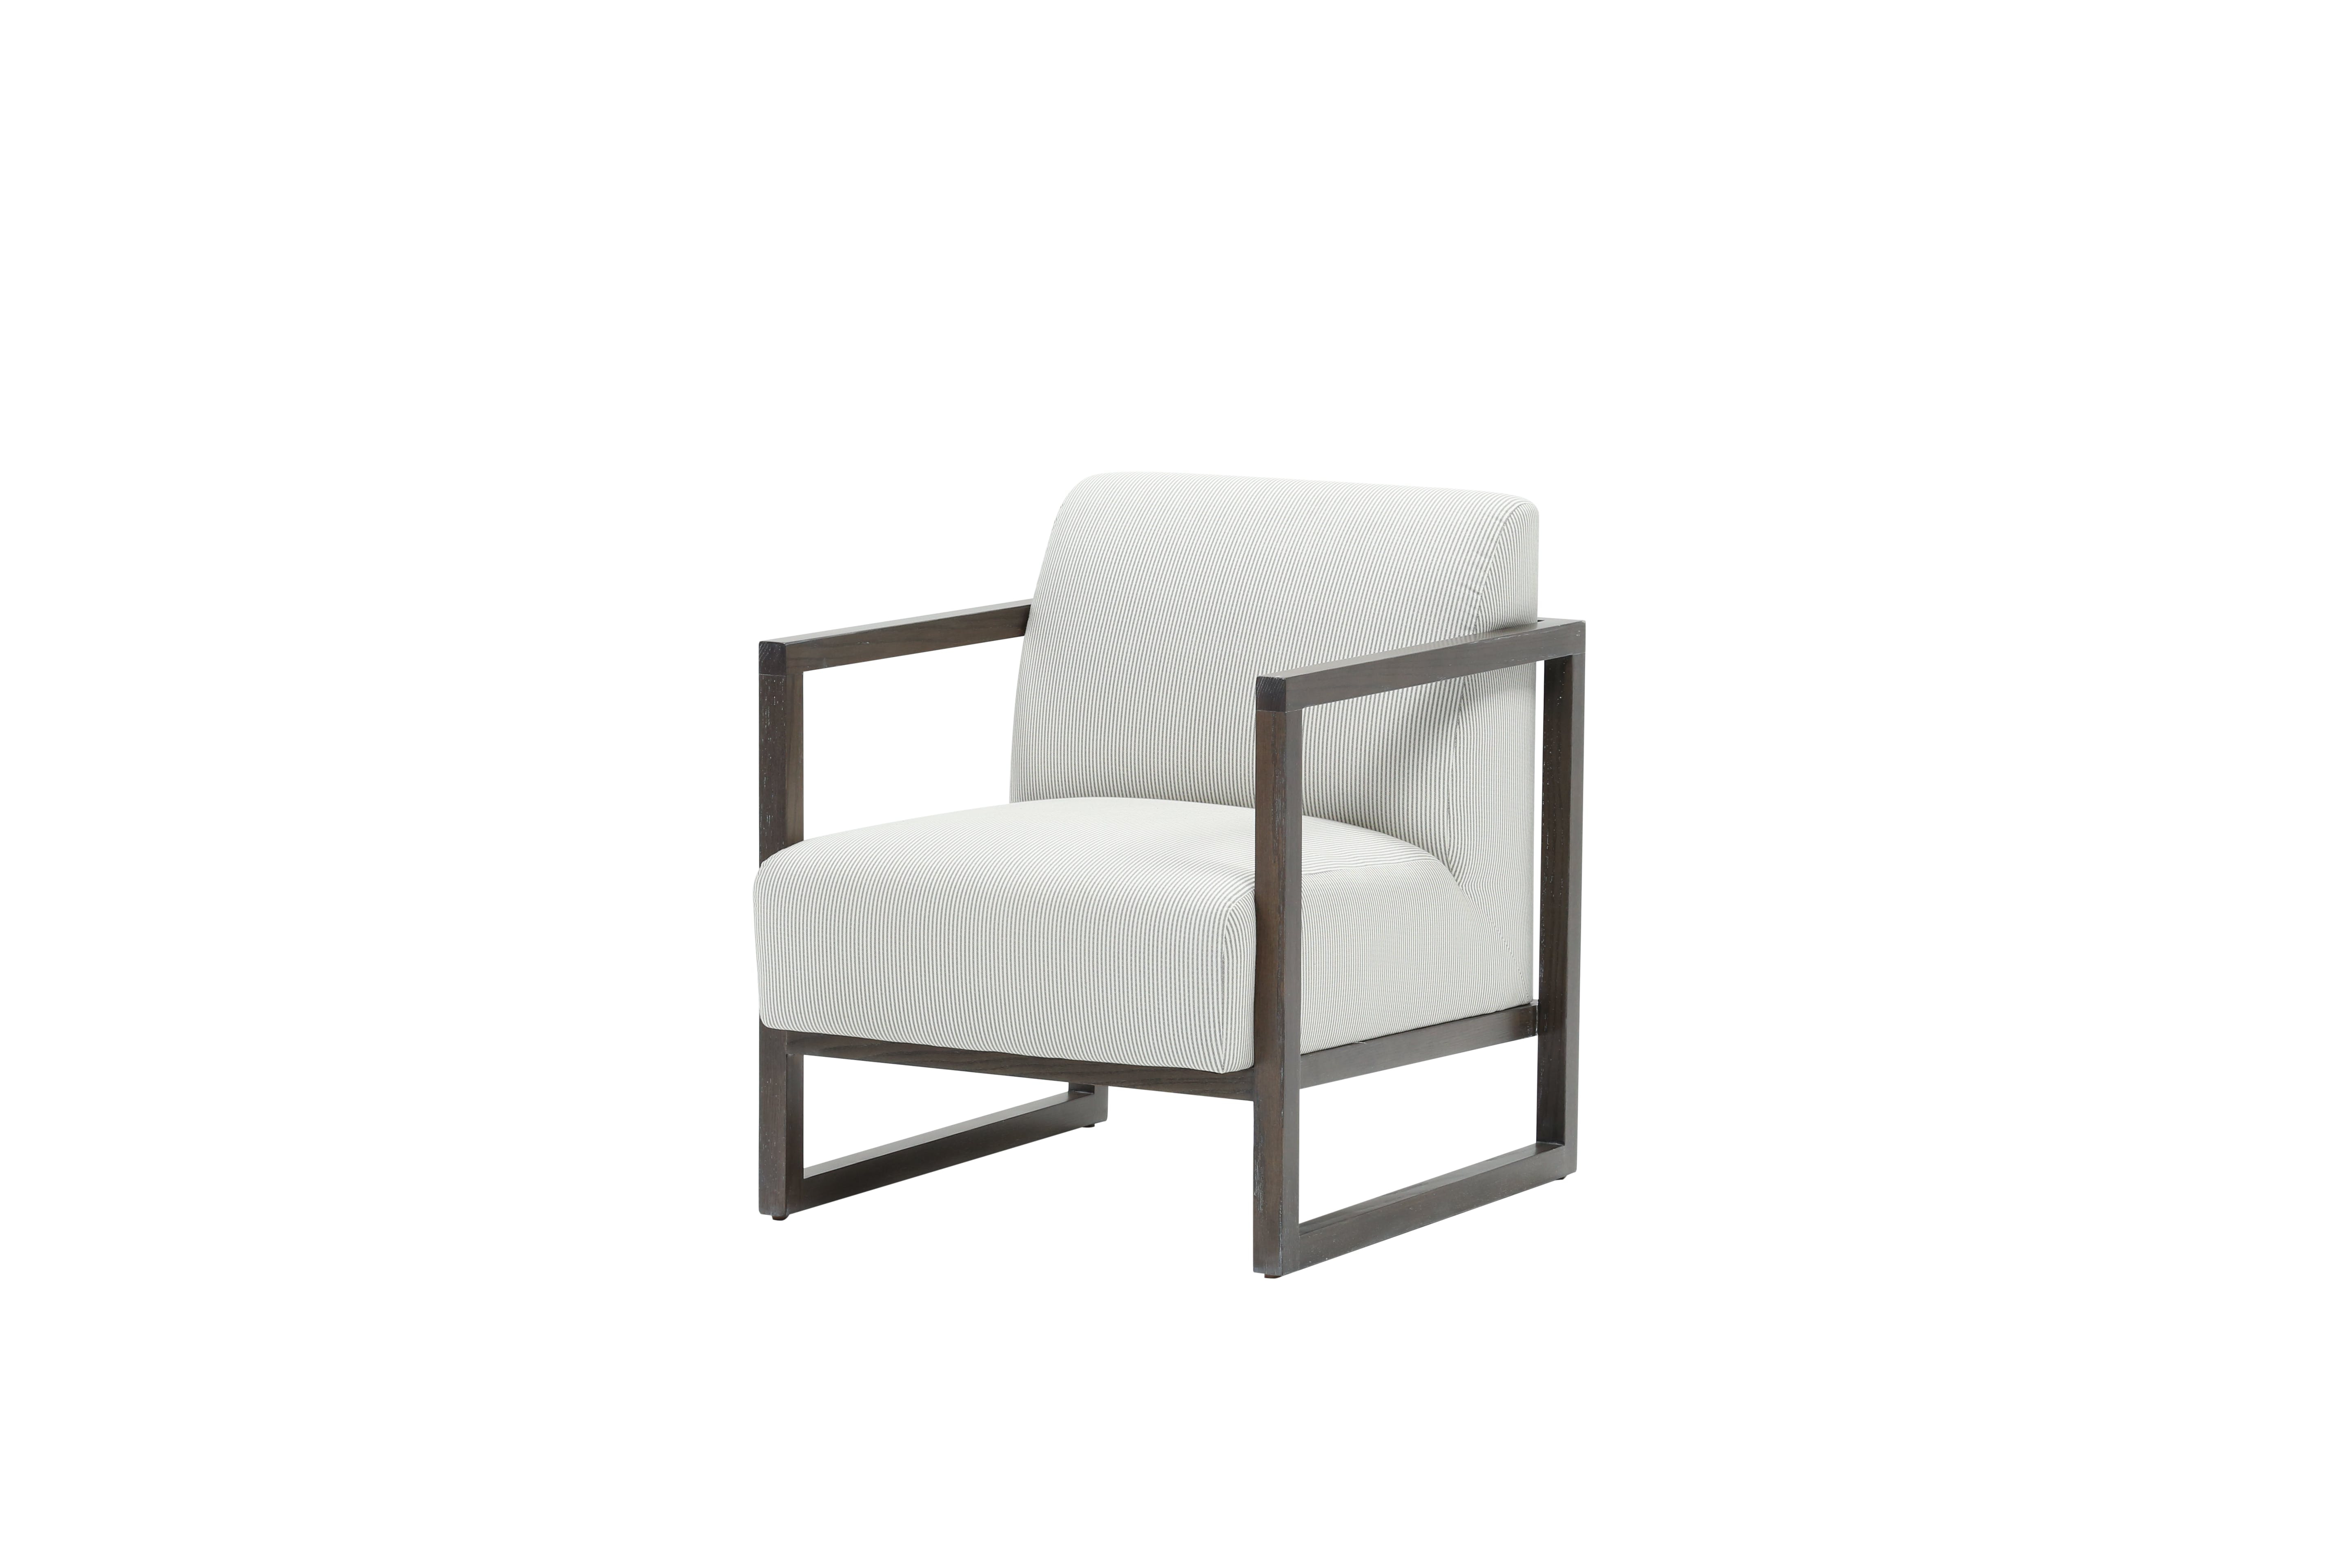 Newest Nate Berkus Just Launched A Home Collection With Hubby Jeremiah Inside Liv Arm Sofa Chairs By Nate Berkus And Jeremiah Brent (View 13 of 20)